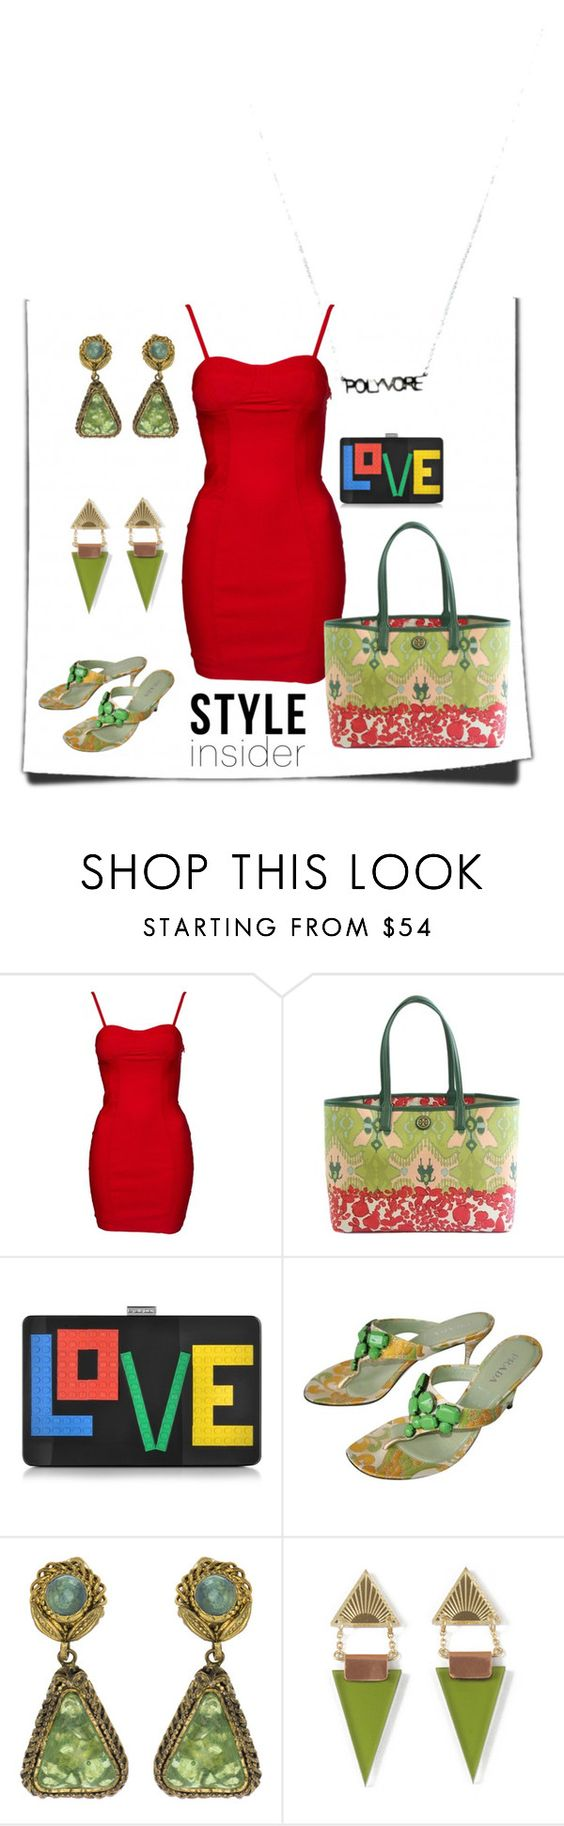 """Untitled #339"" by mountainalive ❤ liked on Polyvore featuring Tory Burch, Les Petits Joueurs, Prada, Chanel, Wolf & Moon, contestentry and styleinsider"